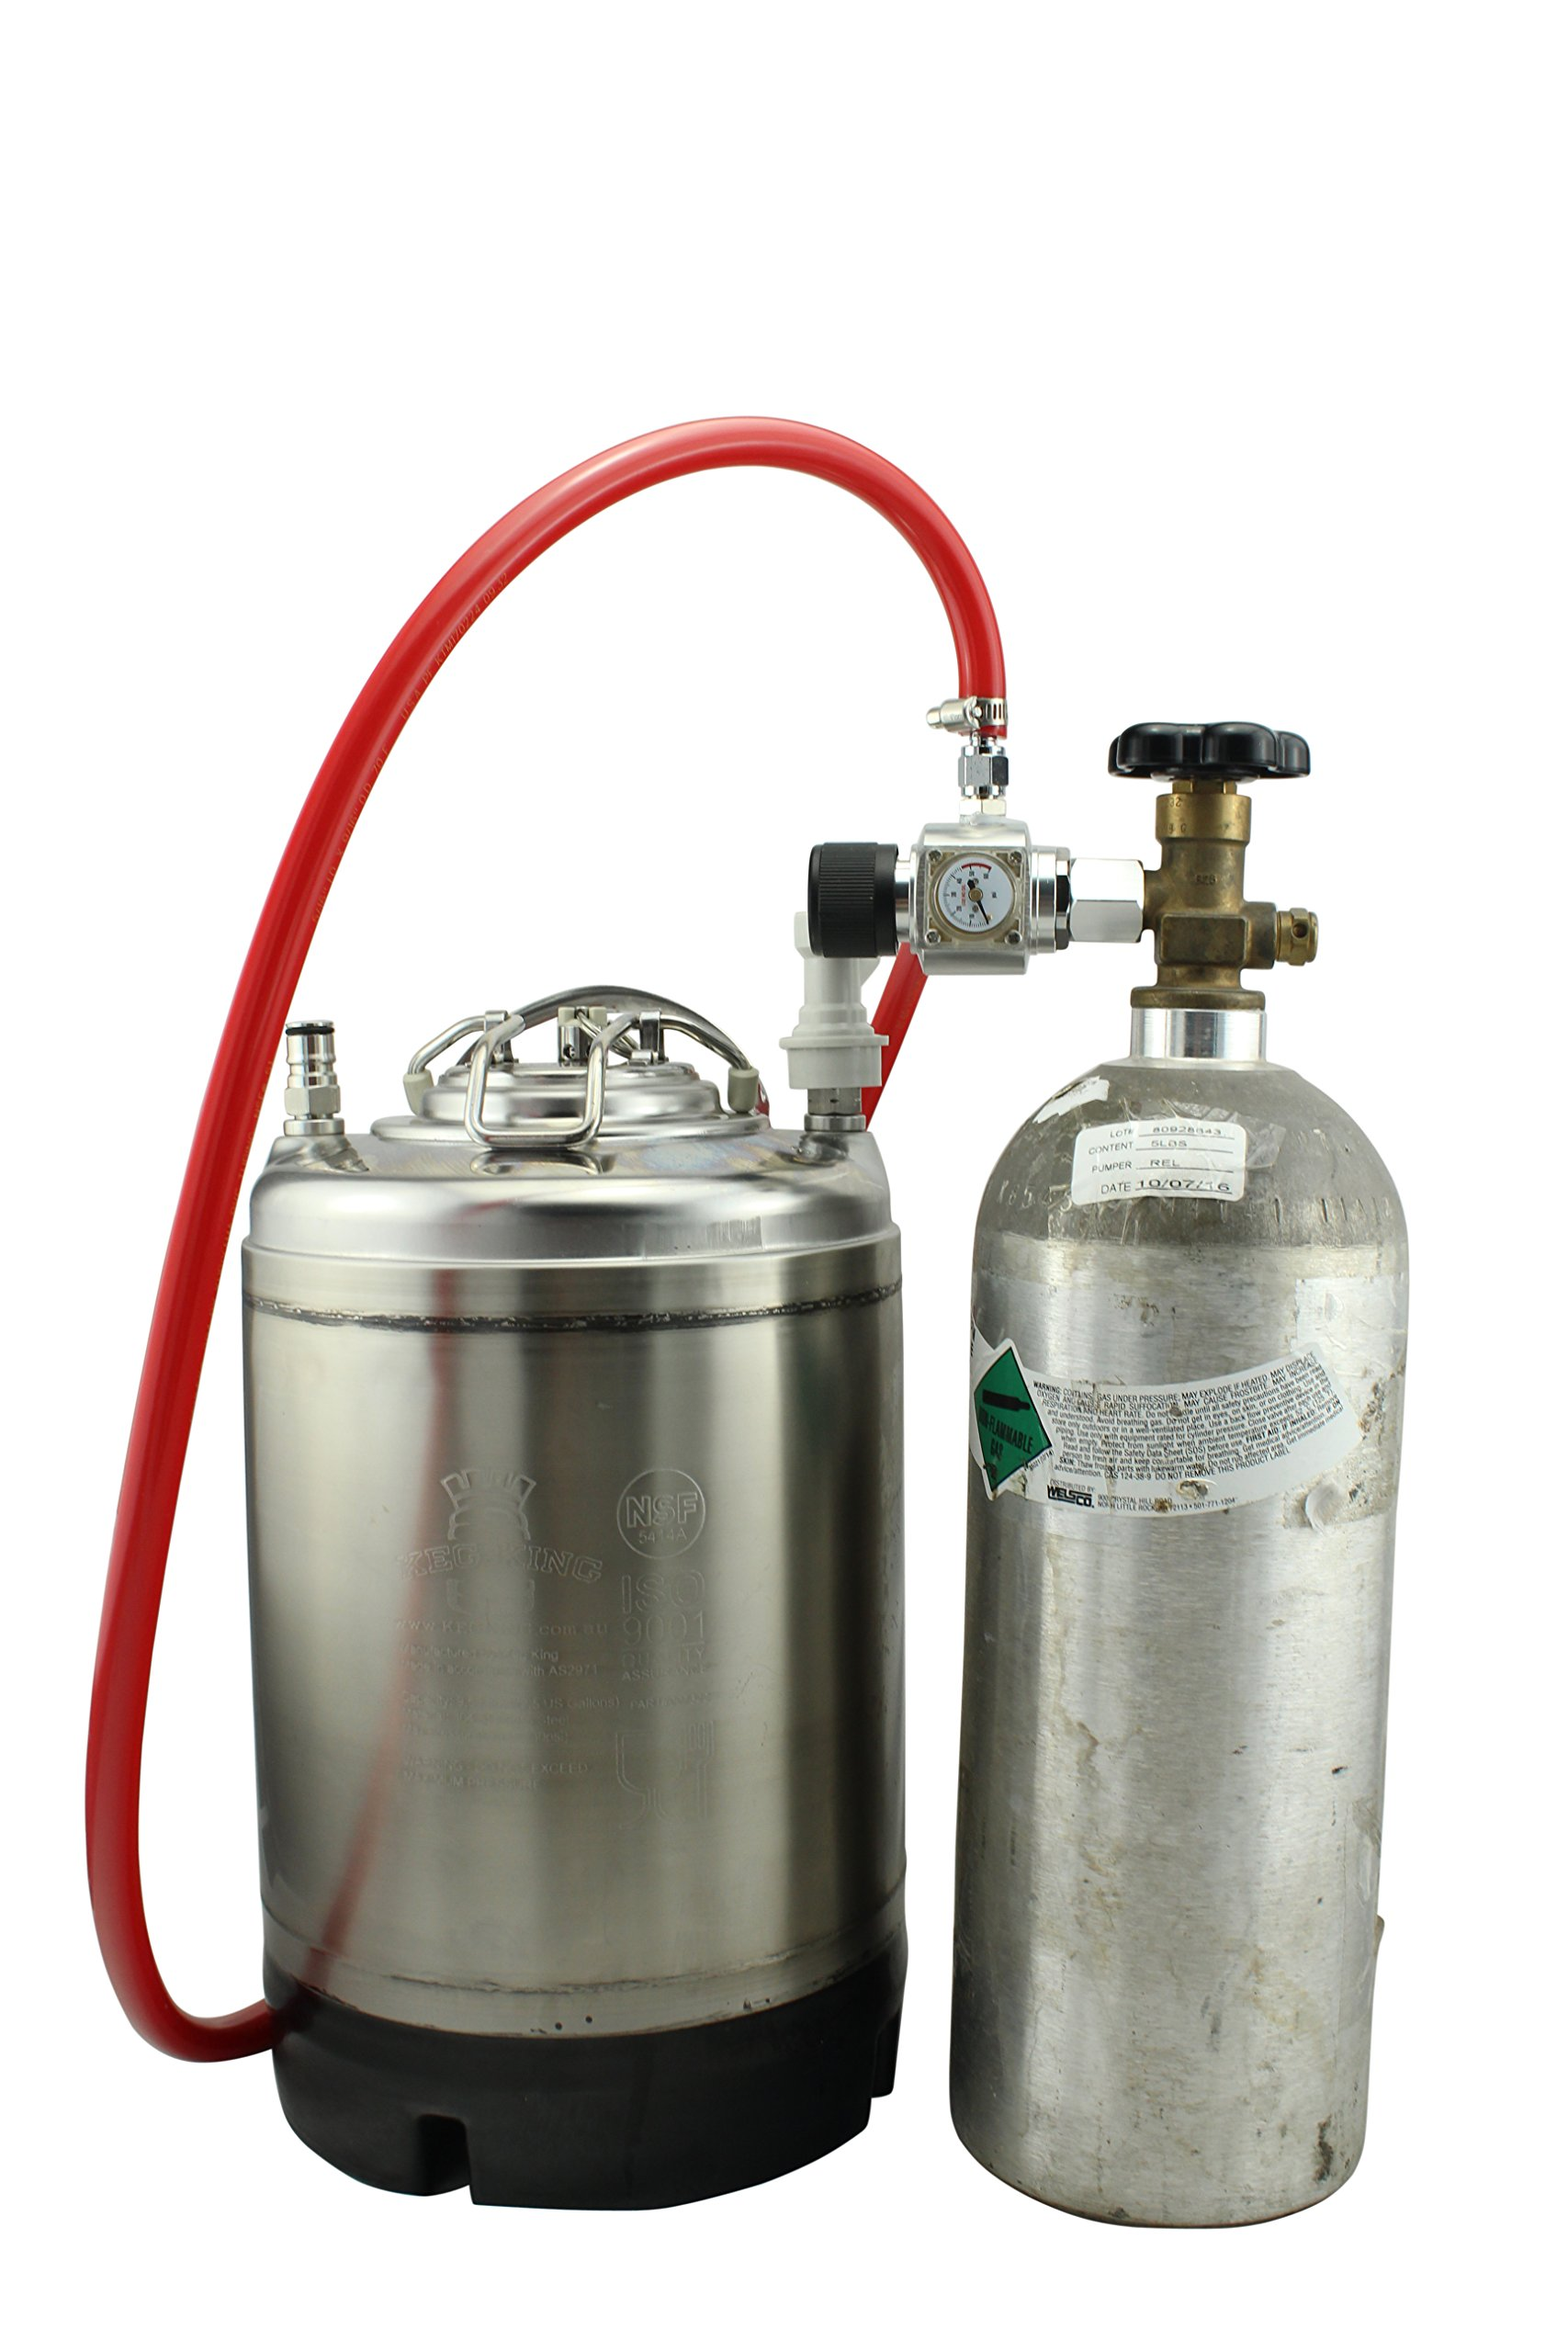 CO2 Injection System for Standard Homebrew Tanks CGA320 by The Weekend Brewer